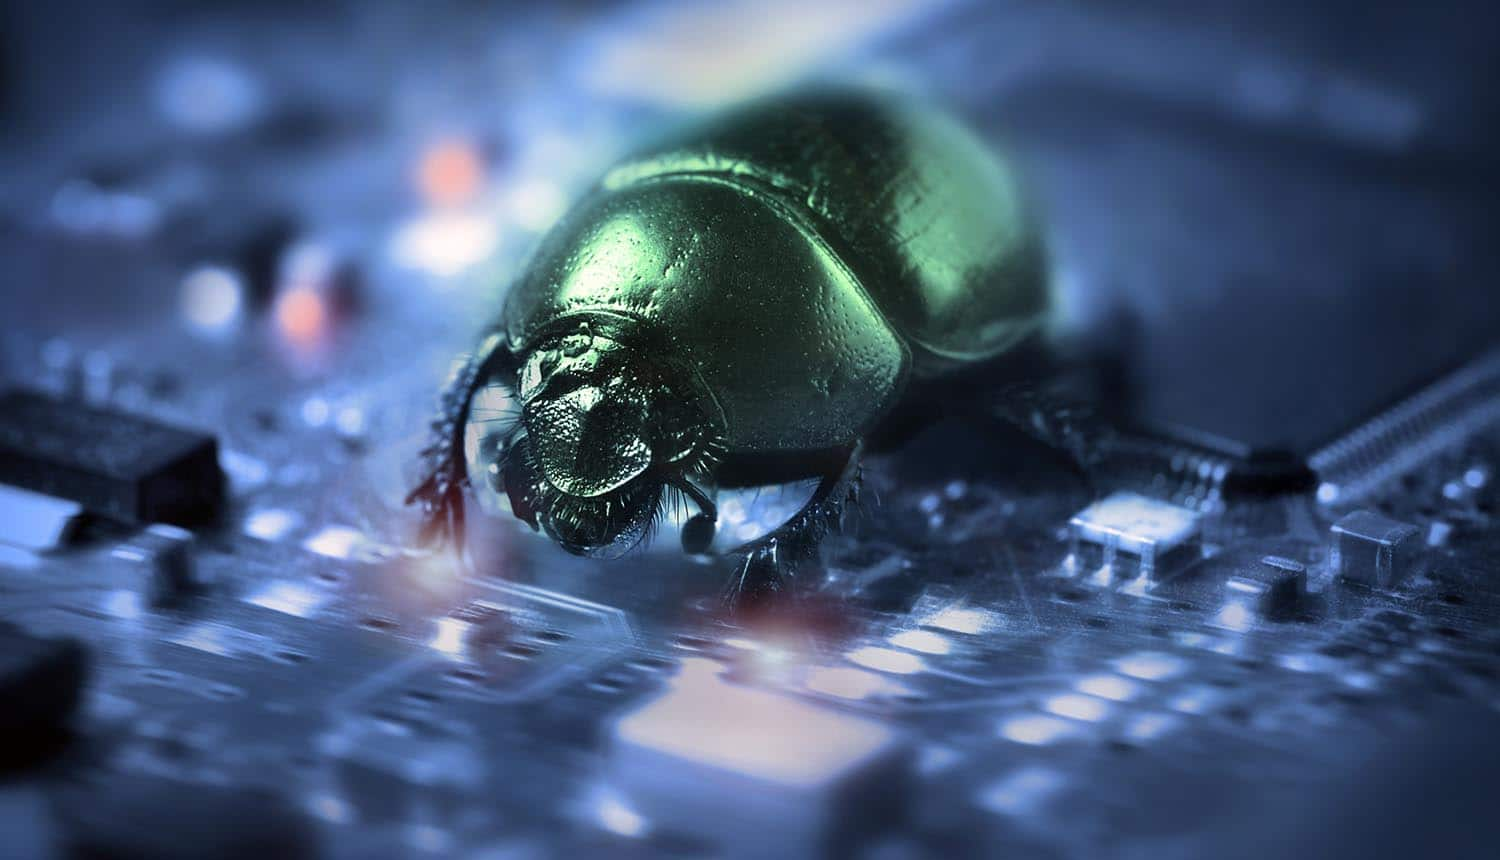 Bug on a computer chip showing the list of top 25 software vulnerabilities released by Department of Homeland Security